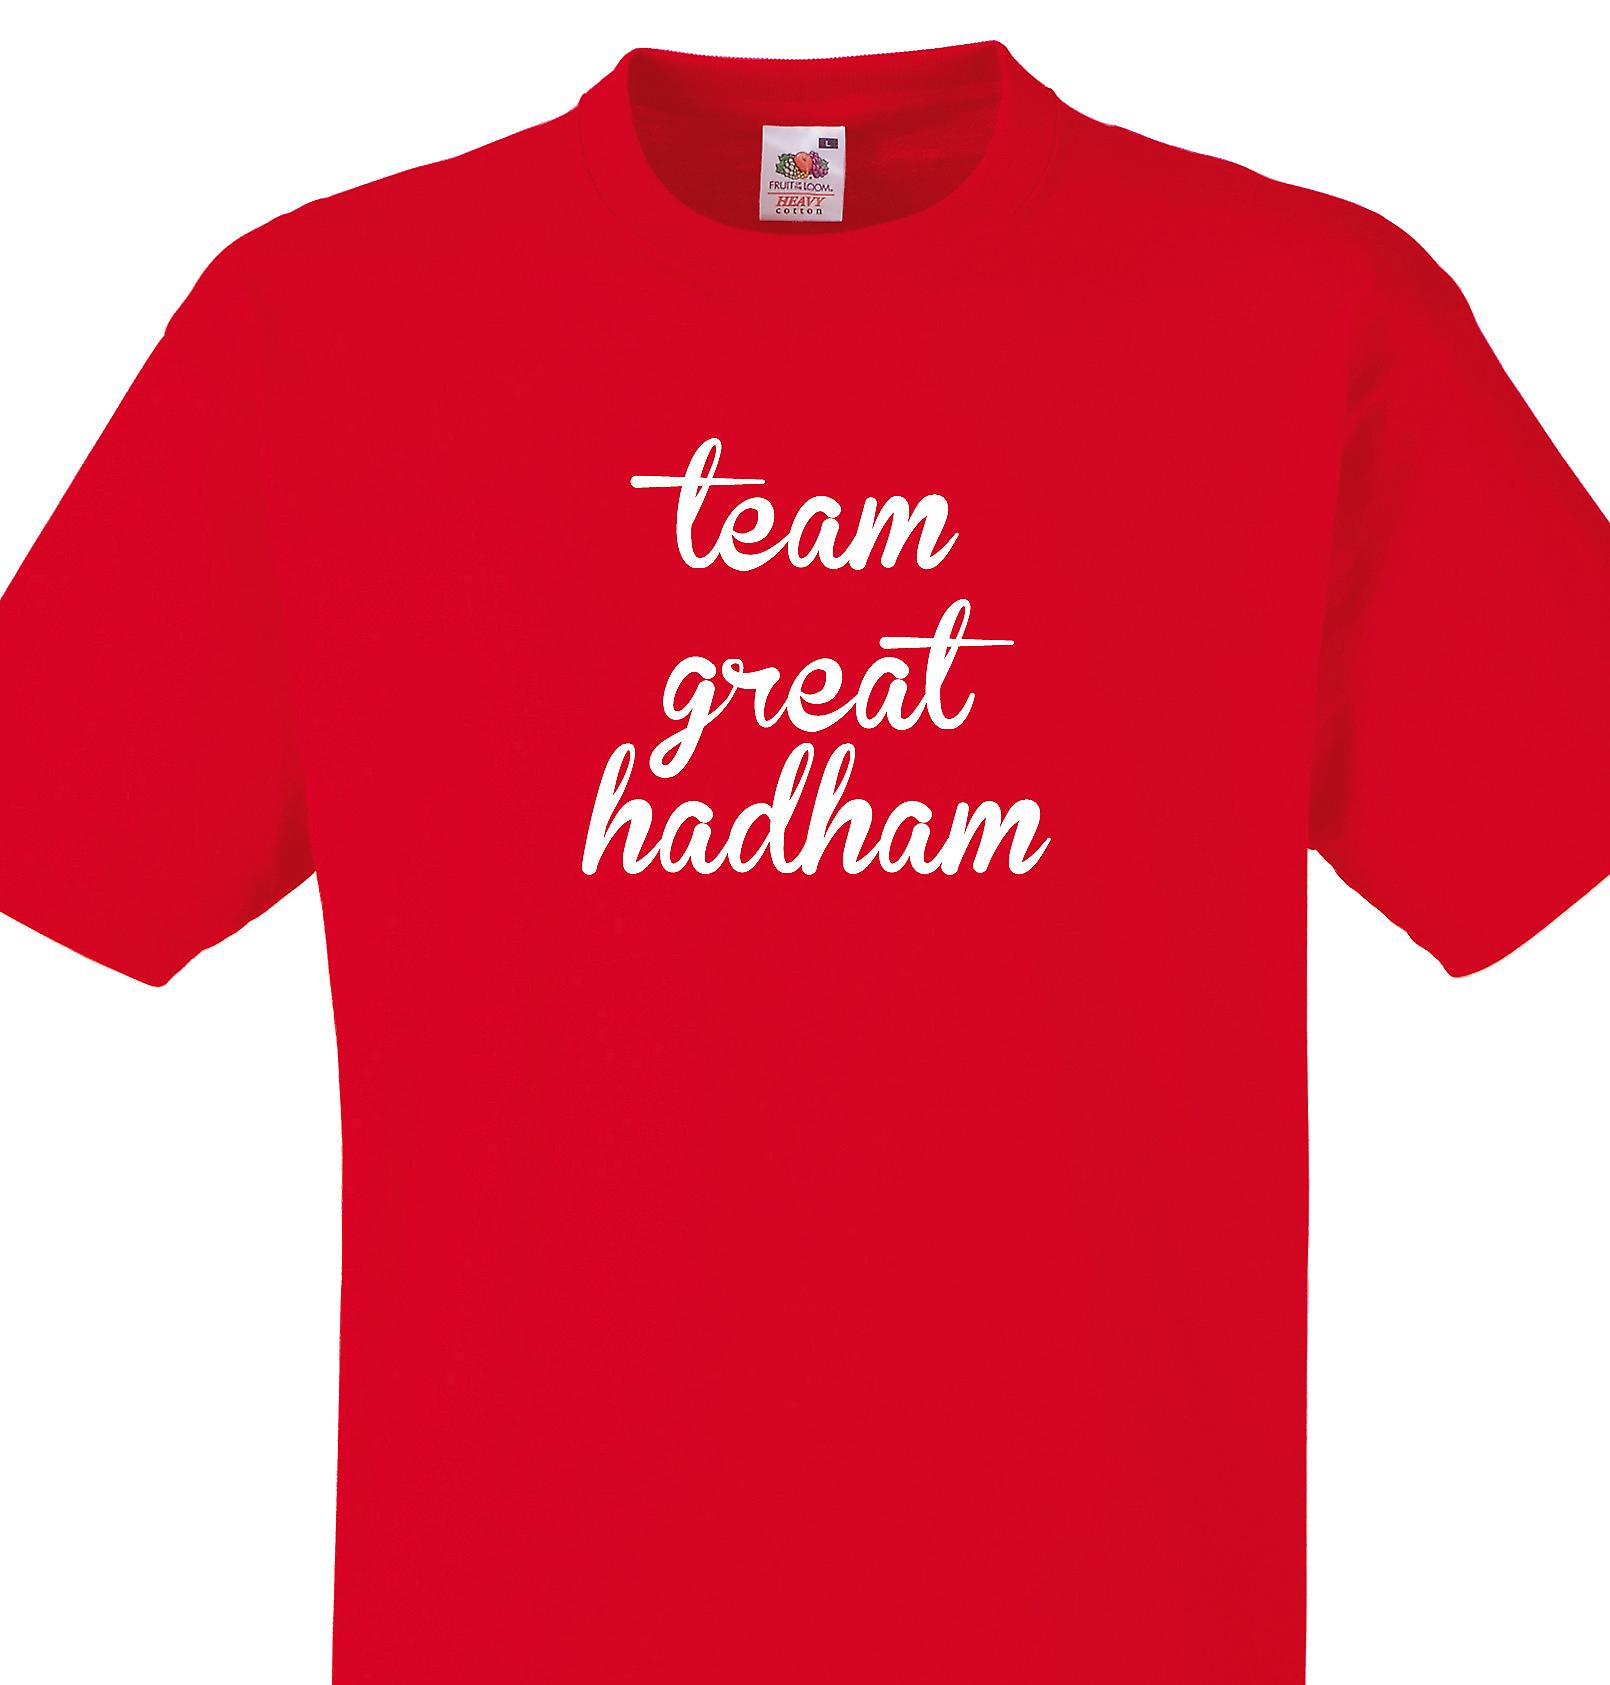 Team Great hadham Red T shirt